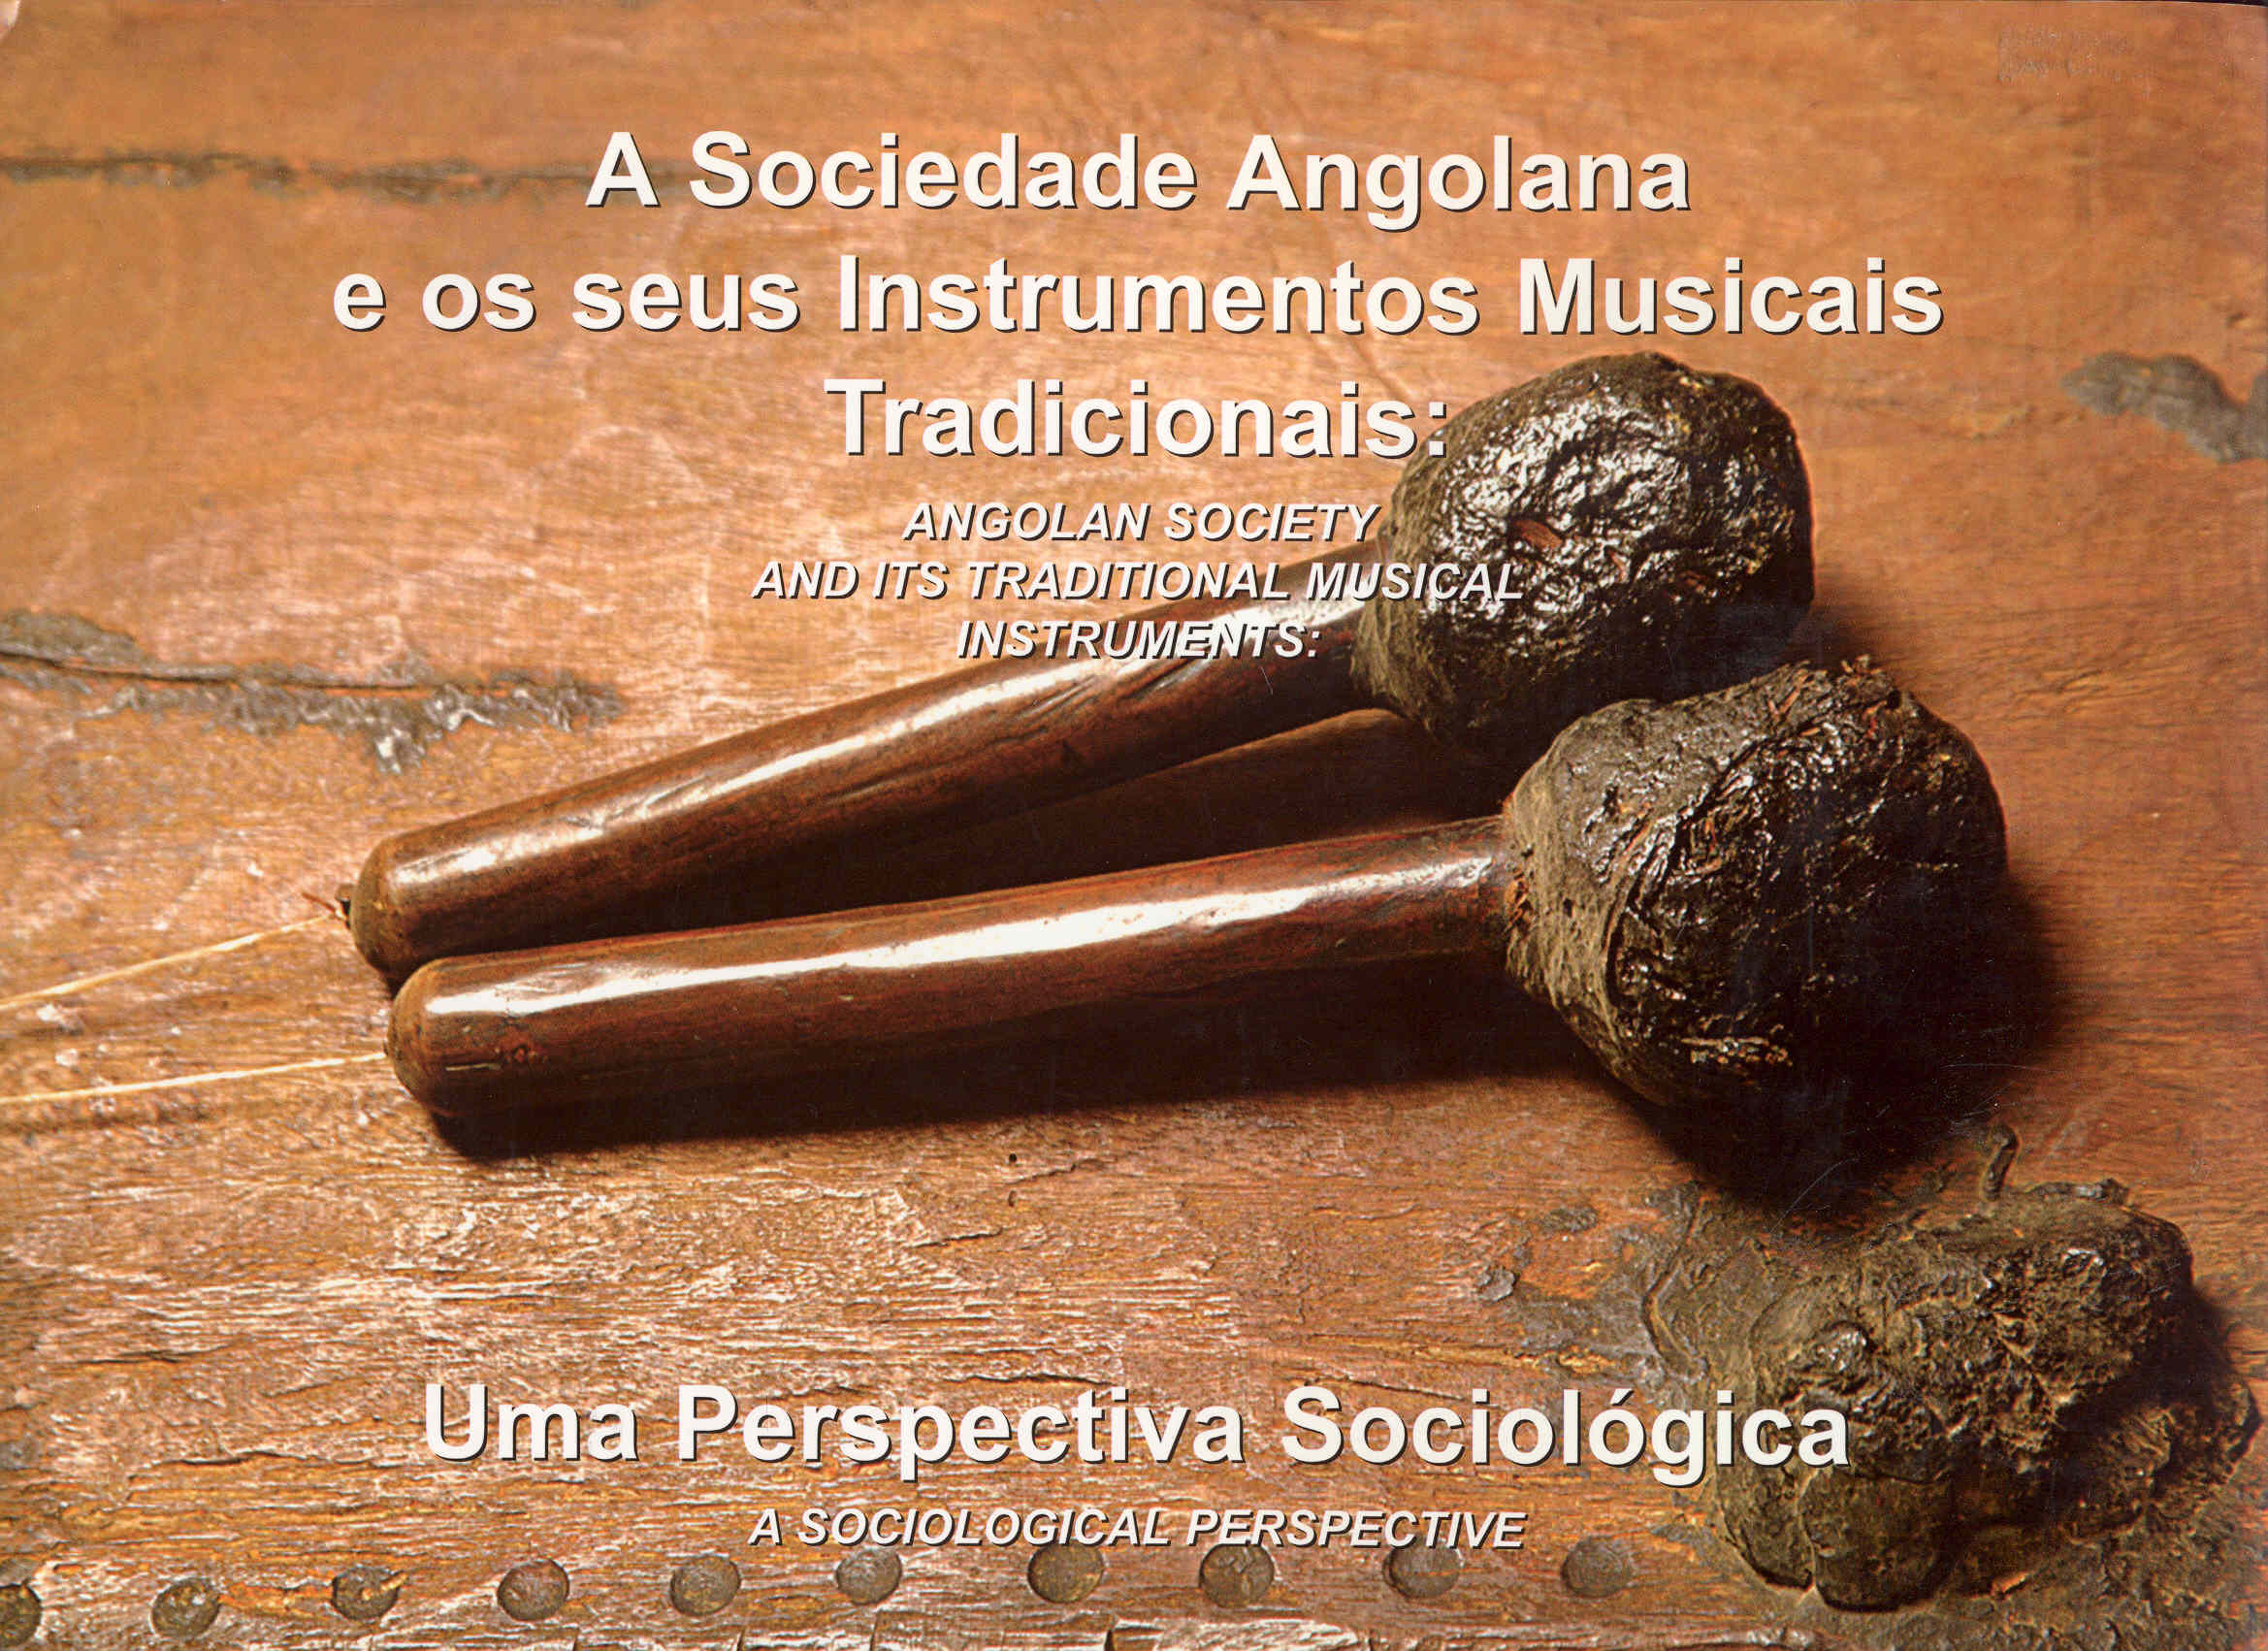 Image for A Sociedade Angolana e os seus Instrumentos Musicais Tradicionais: Uma perspectiva sociológica / Angolan Society and Its Traditional Musical Instruments: A Sociological Perspective